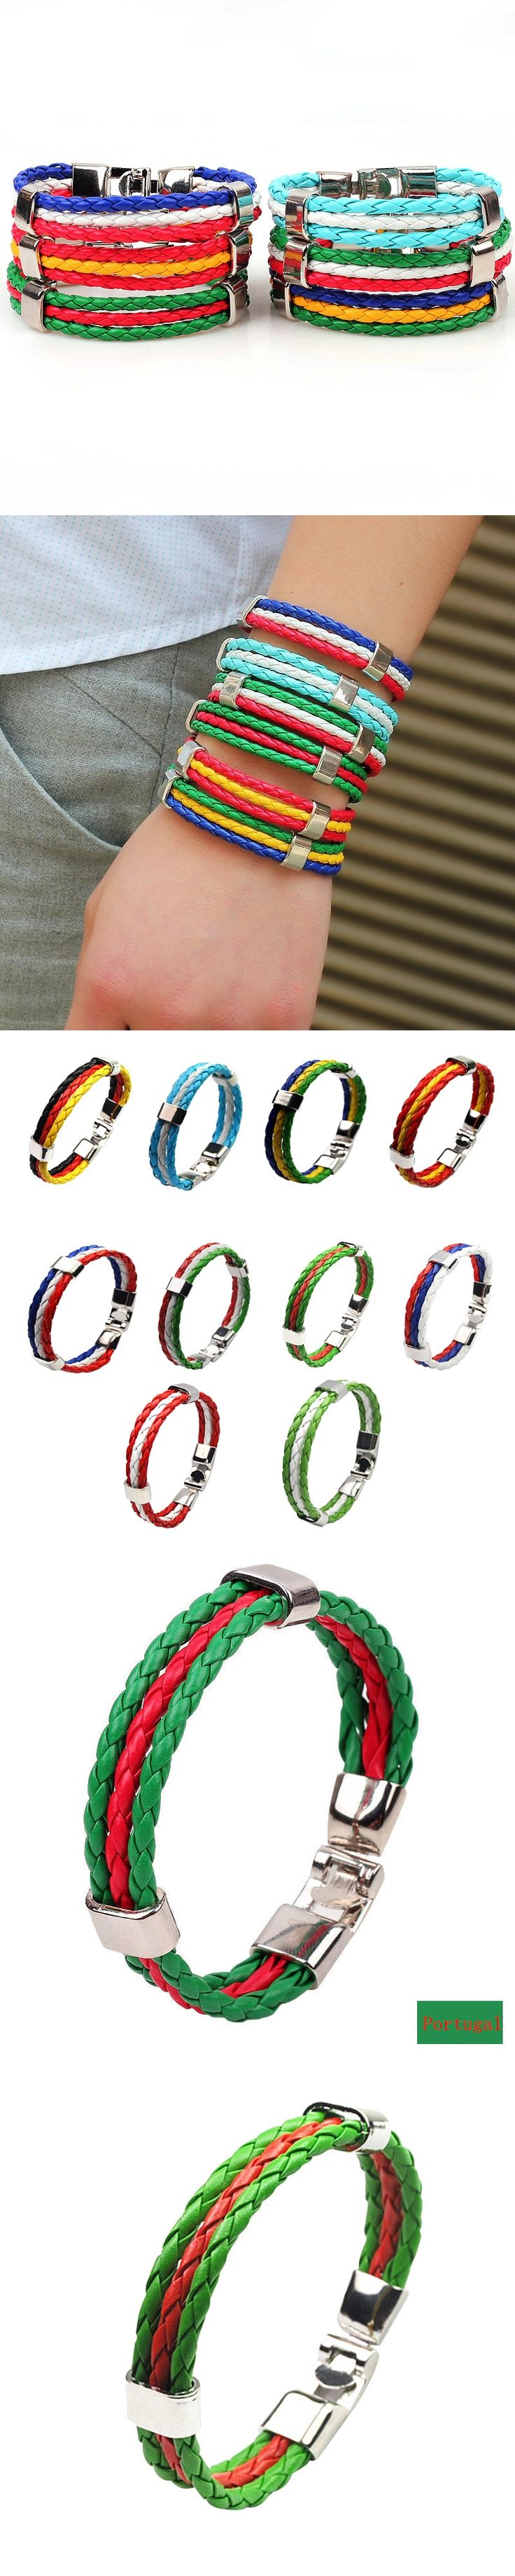 2017 Hot European Cup Bracelet Portuguese flag colors woven leather bracelet Portugal Bangle great gift for Portugal cheer!